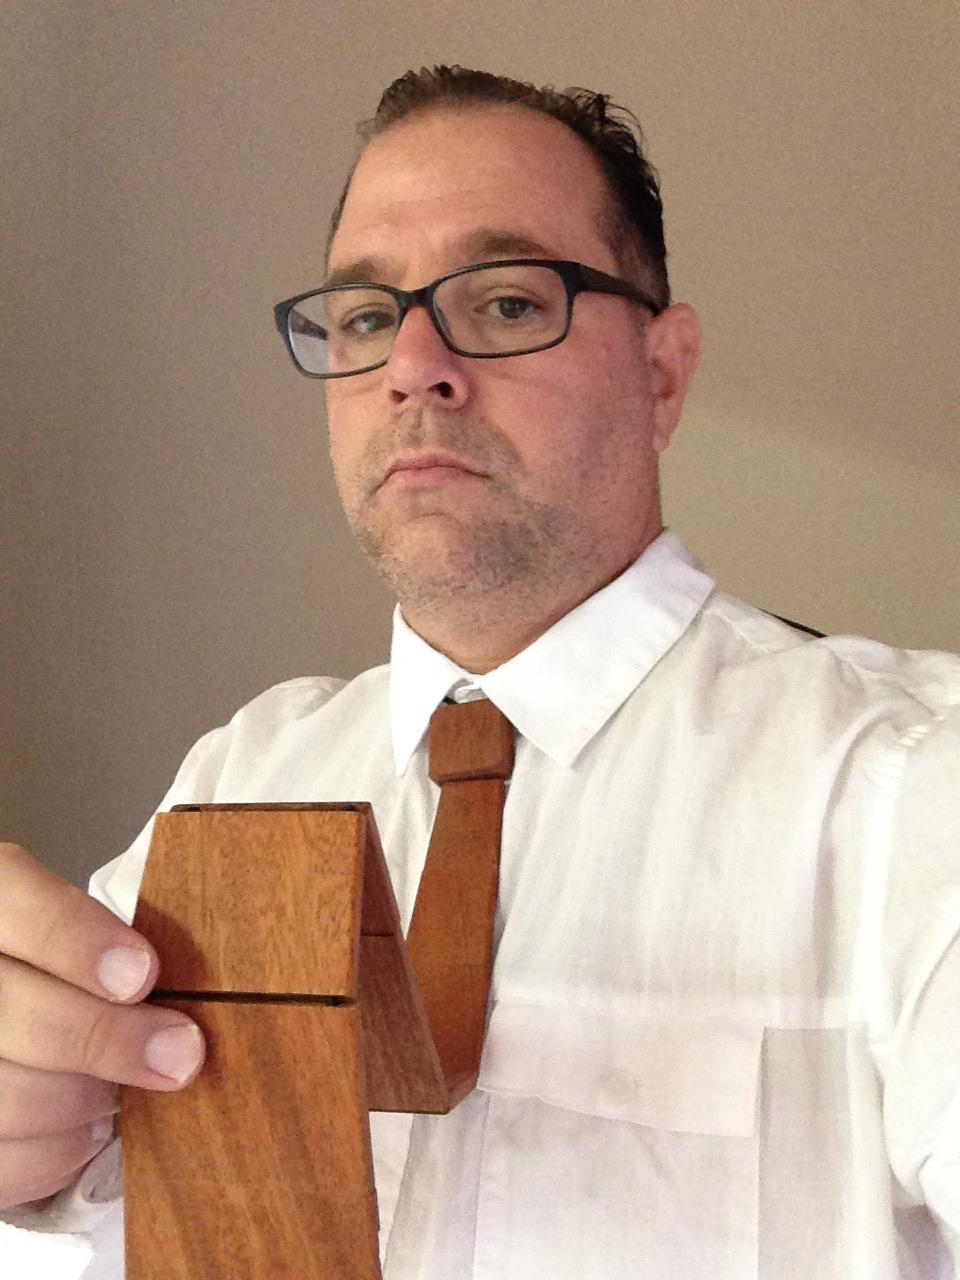 David Moye, a staff writer for HuffPost Weird News, demonstrates his incredible fashion sense by modeling a wooden tie.